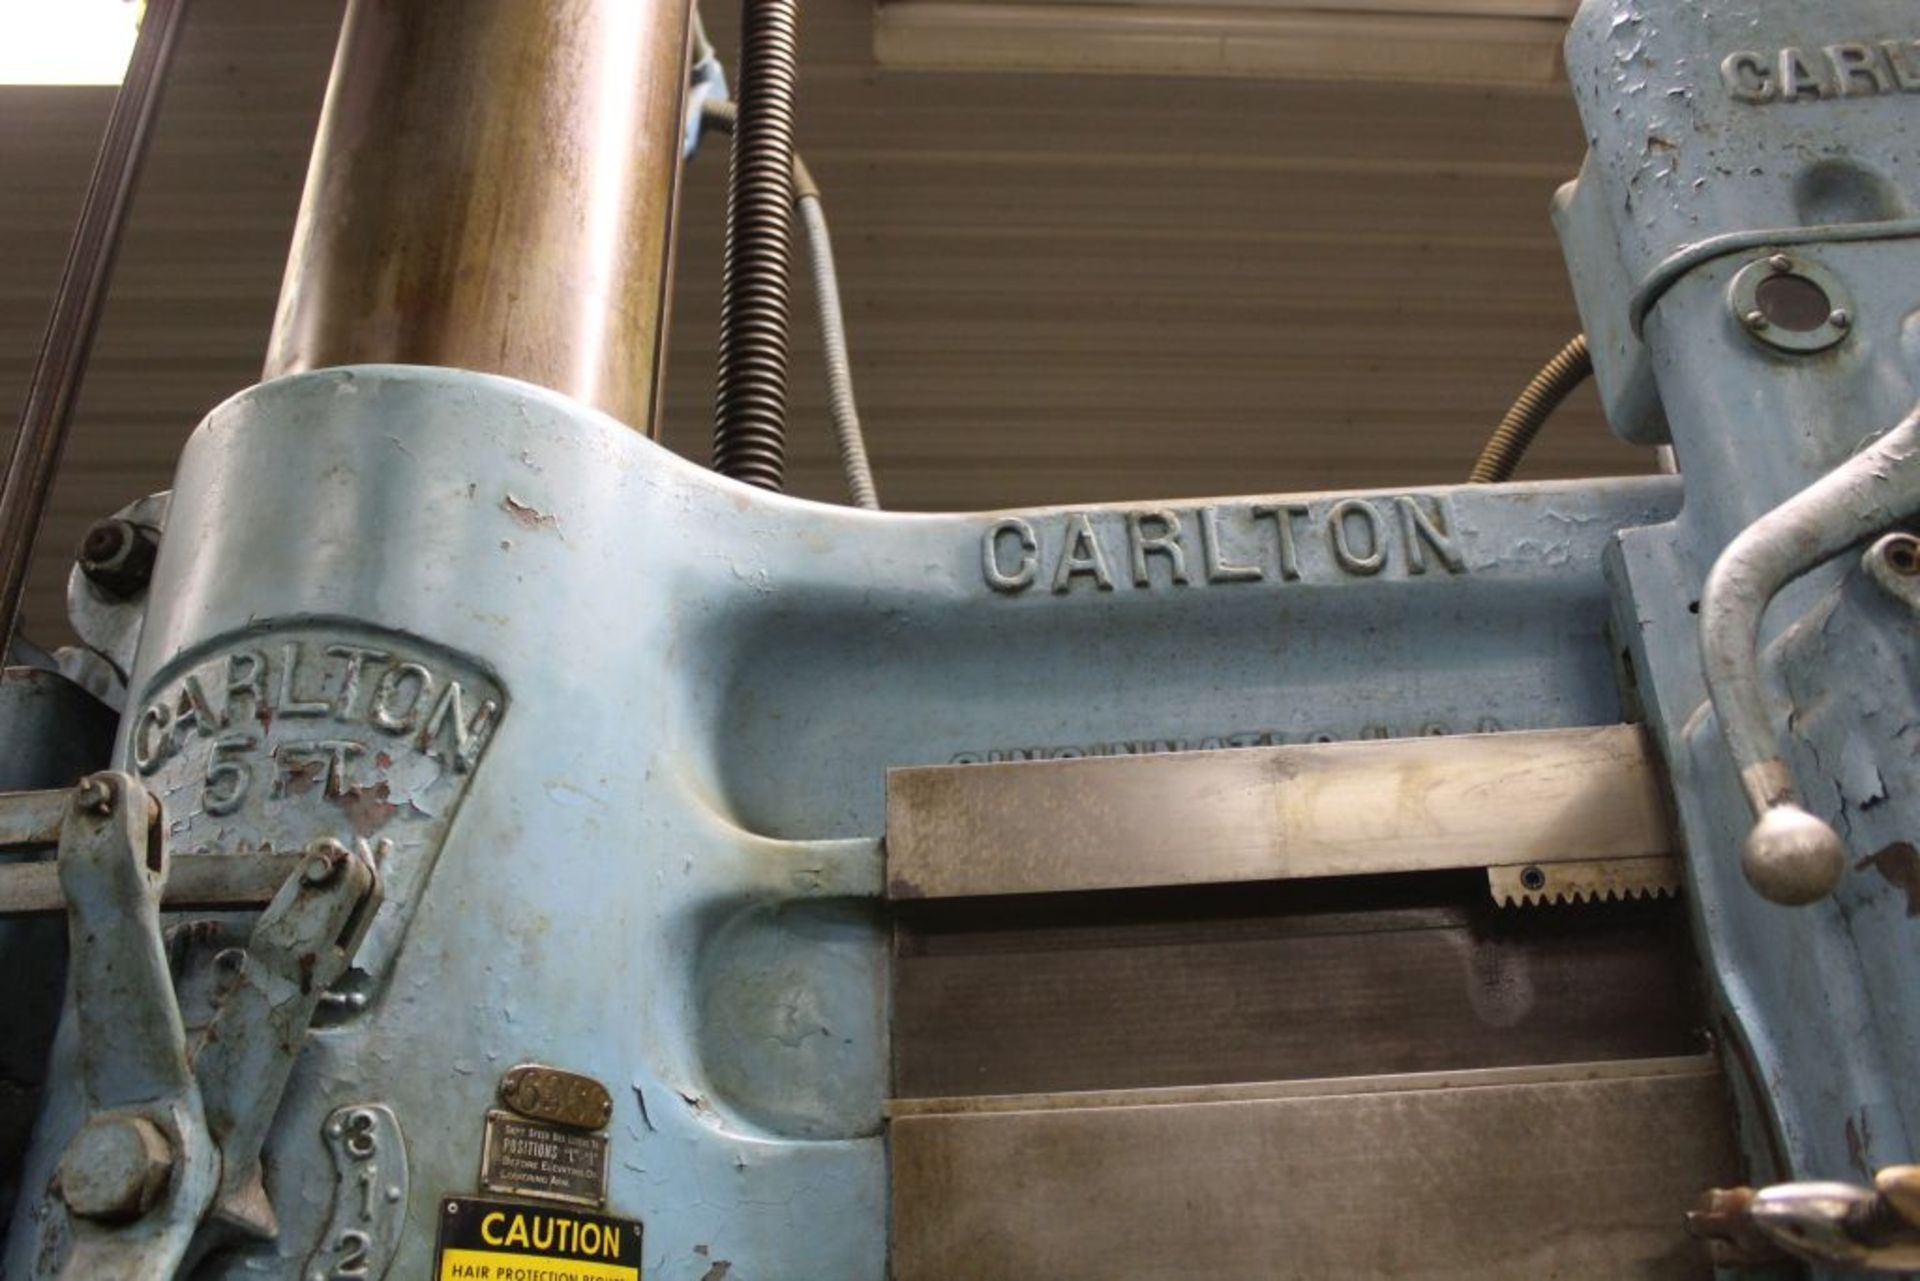 """Carlton radial arm drill, 5' arm, 11"""" column, 9' 9"""" total height, 36"""" x 53"""" bed, misc. tooling. - Image 6 of 8"""